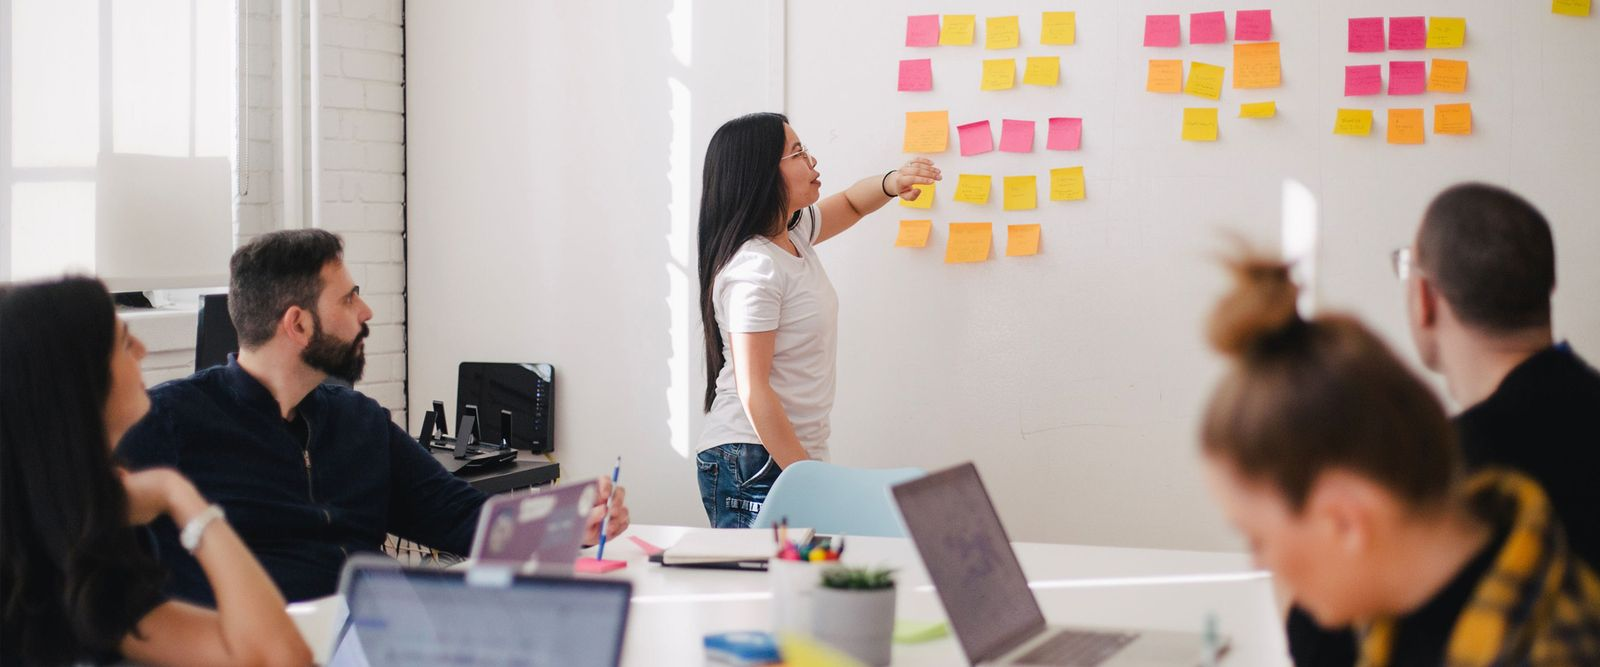 Workshop situation in front of a white wall with sticky notes